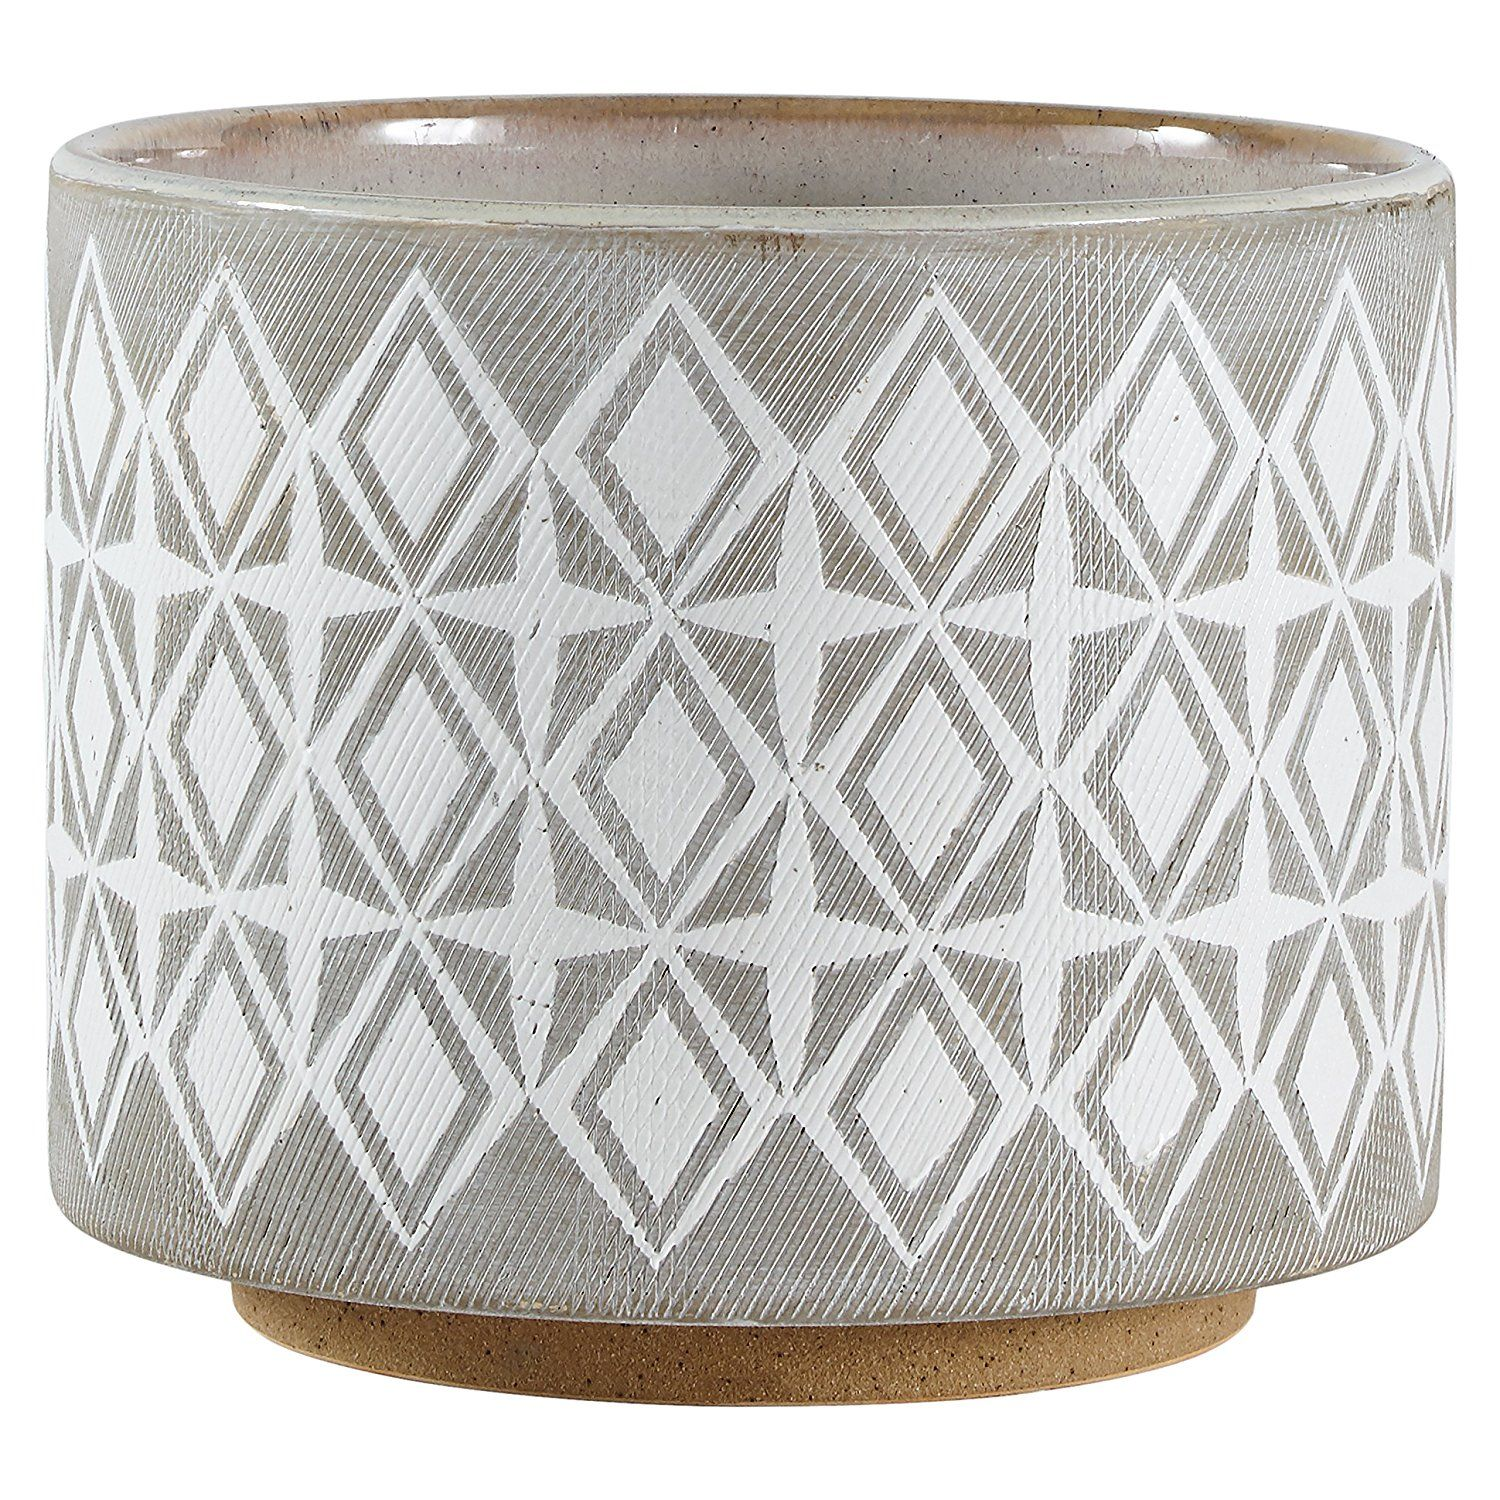 10 Design Buys No One Will Know Came from Amazon Ceramic